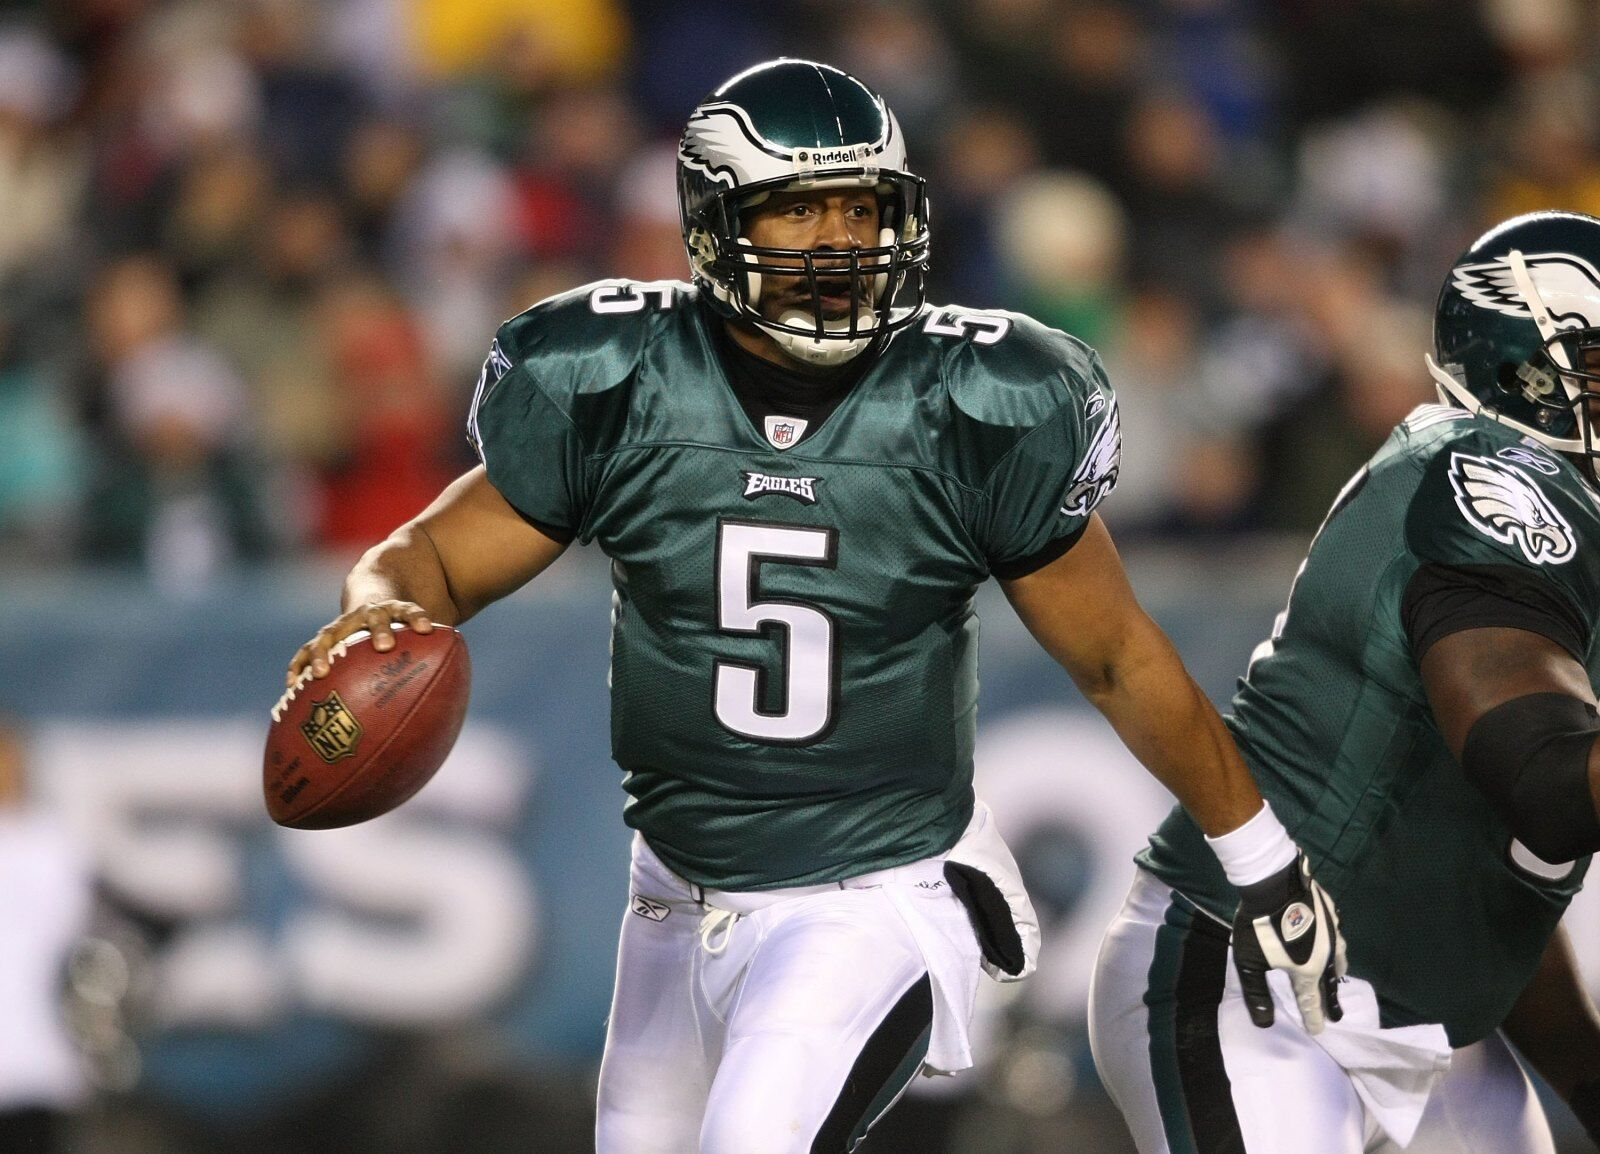 Philadelphia Eagles: Donovan McNabb voted into Philly Sports Hall of Fame